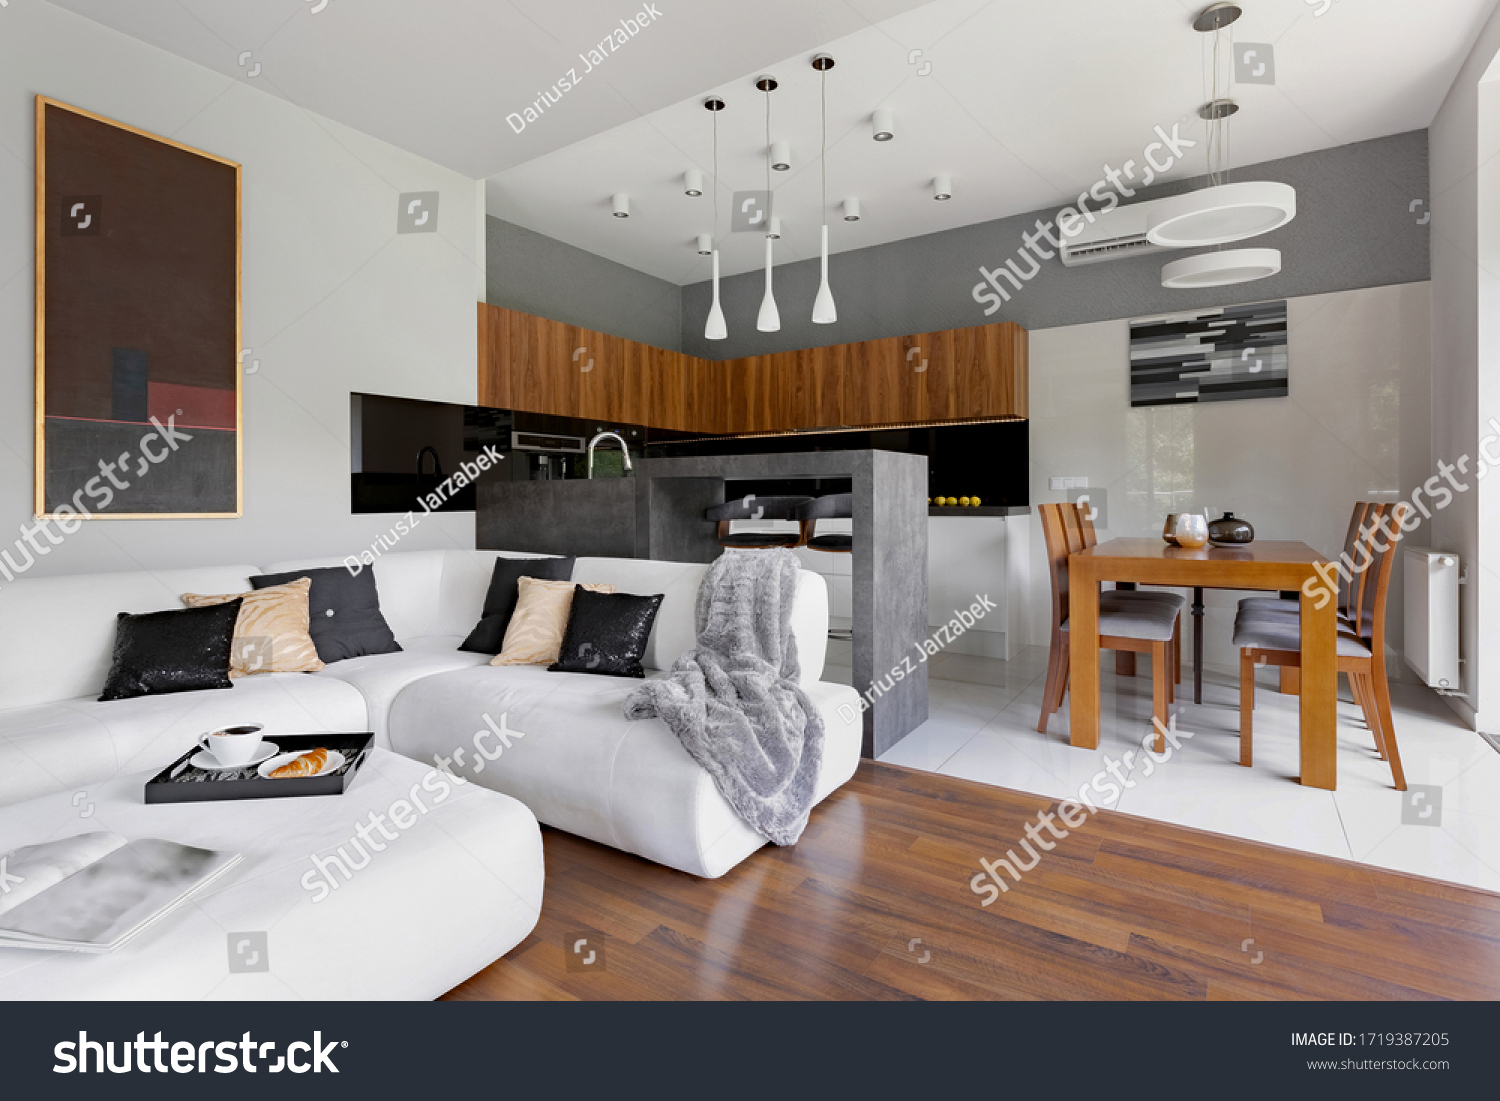 Modern apartment with living room and kitchen with dining table in one space #1719387205